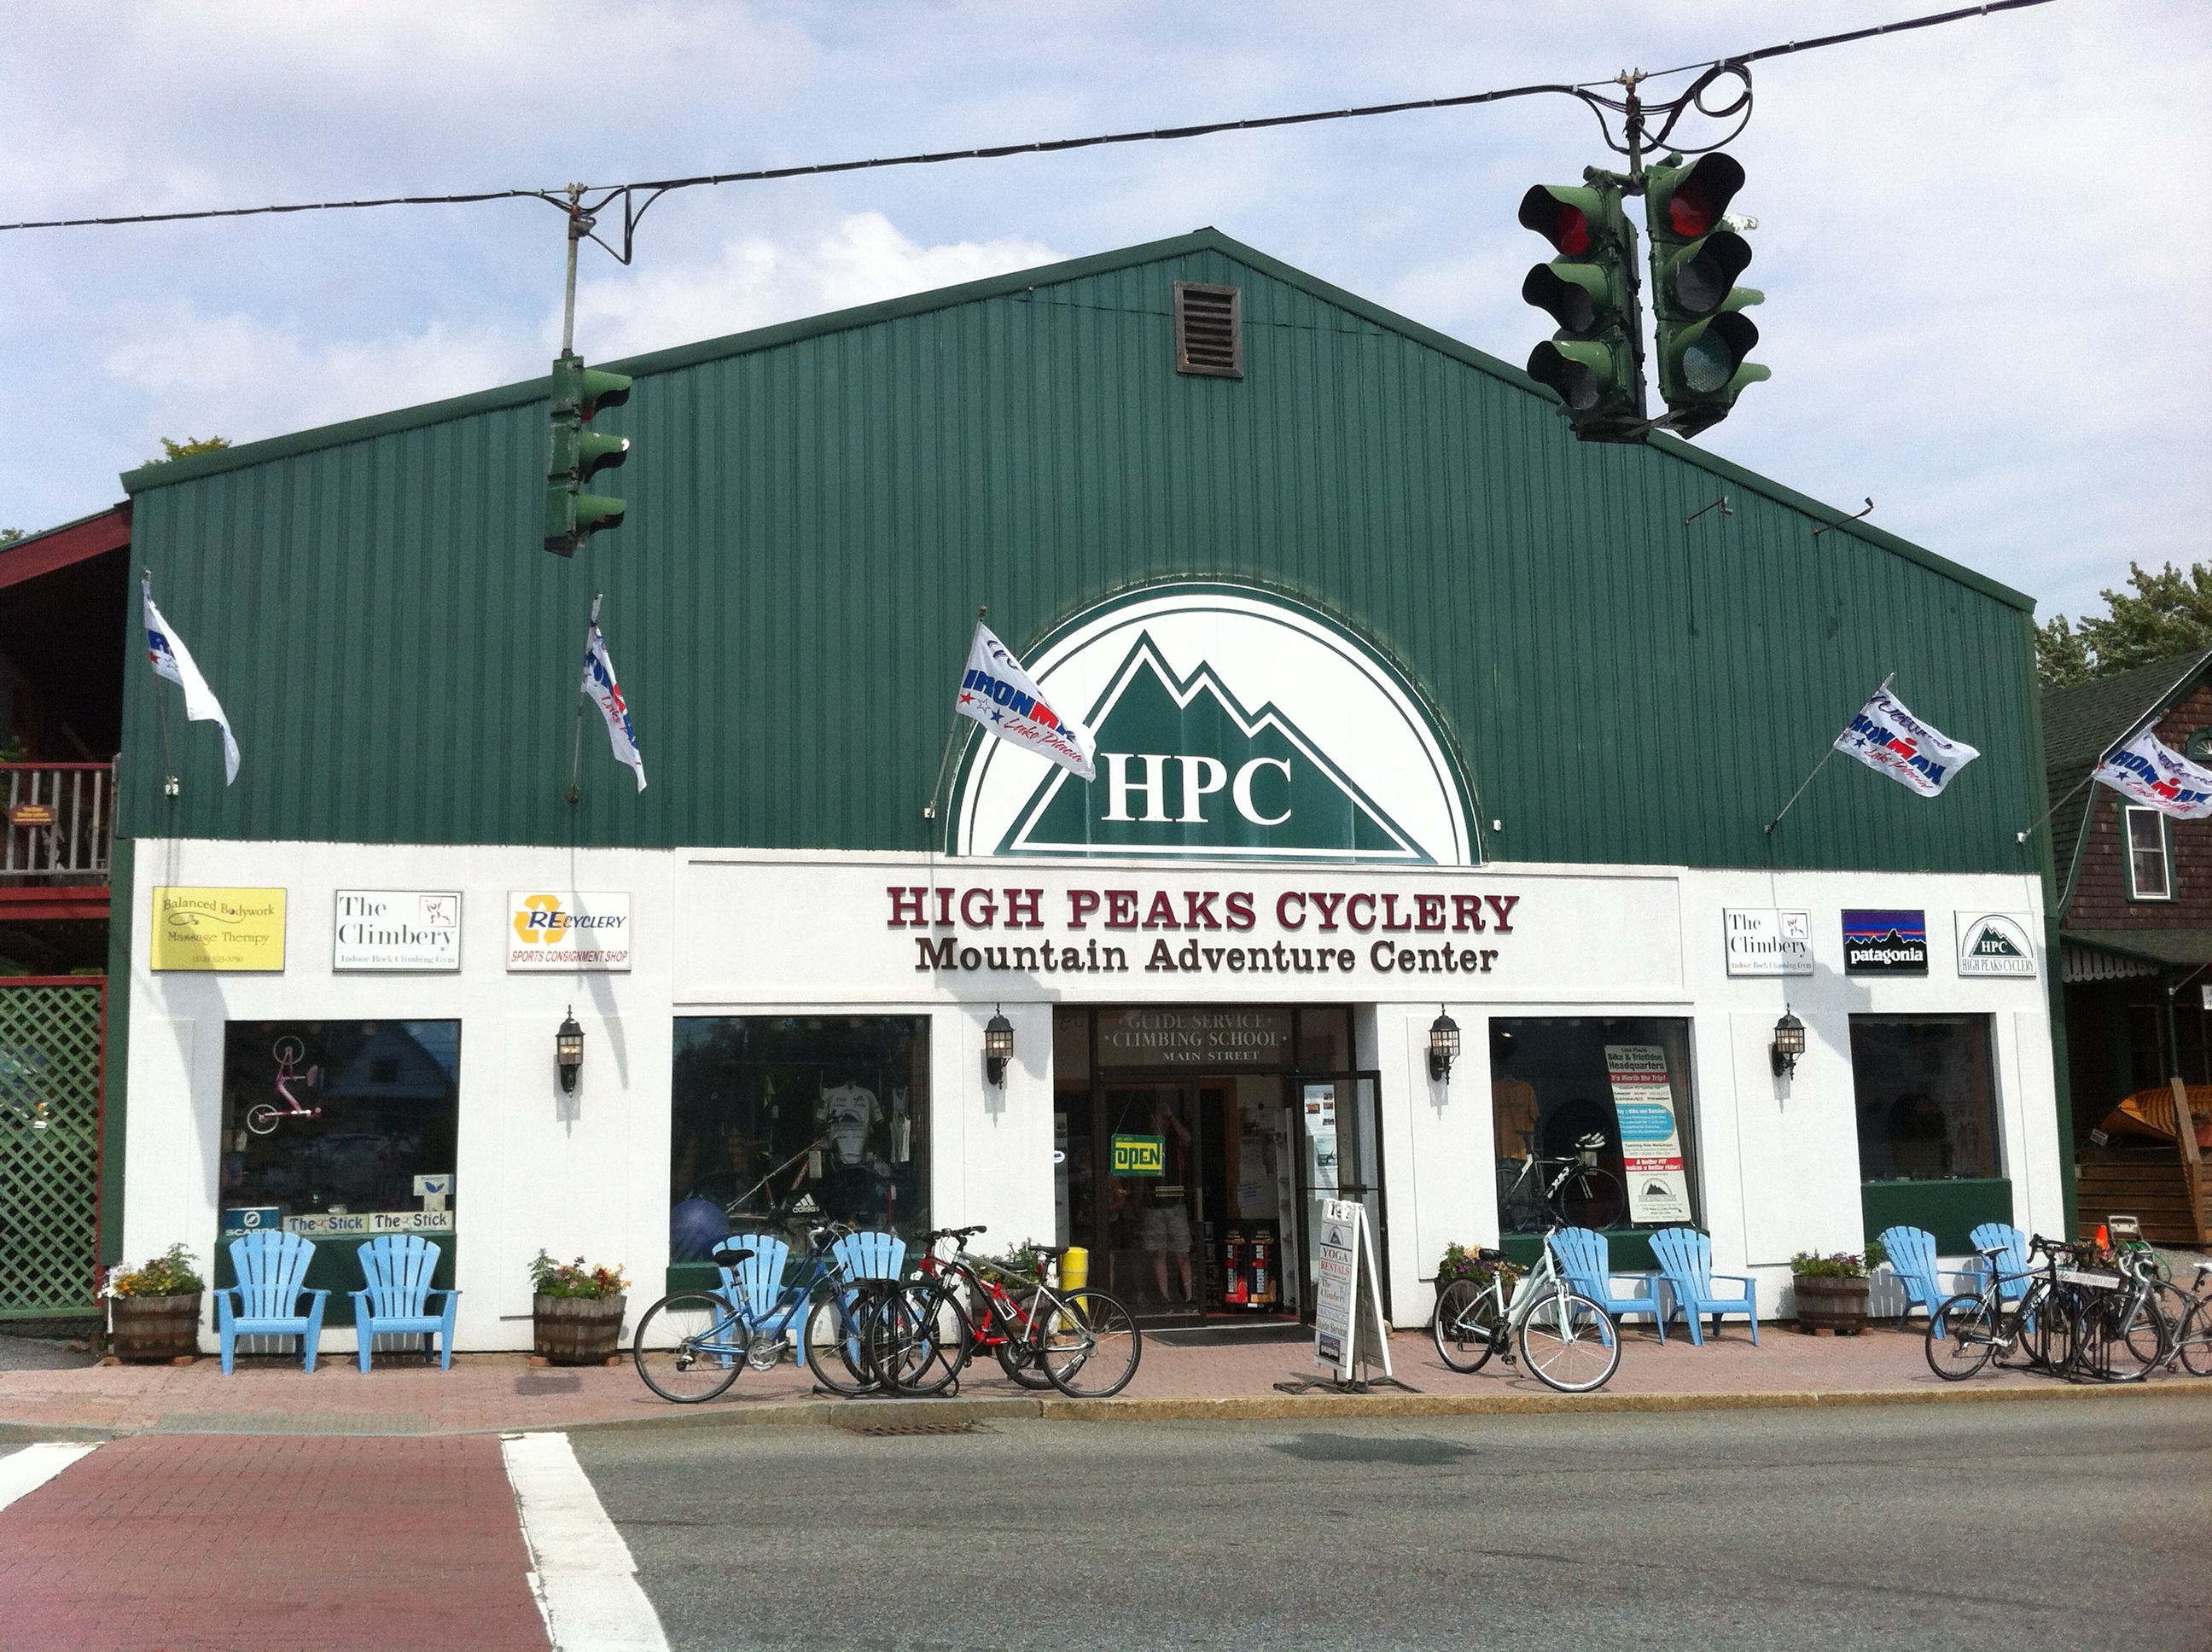 High Peaks Cyclery, 2733 Main Street, Lake Placid, New York